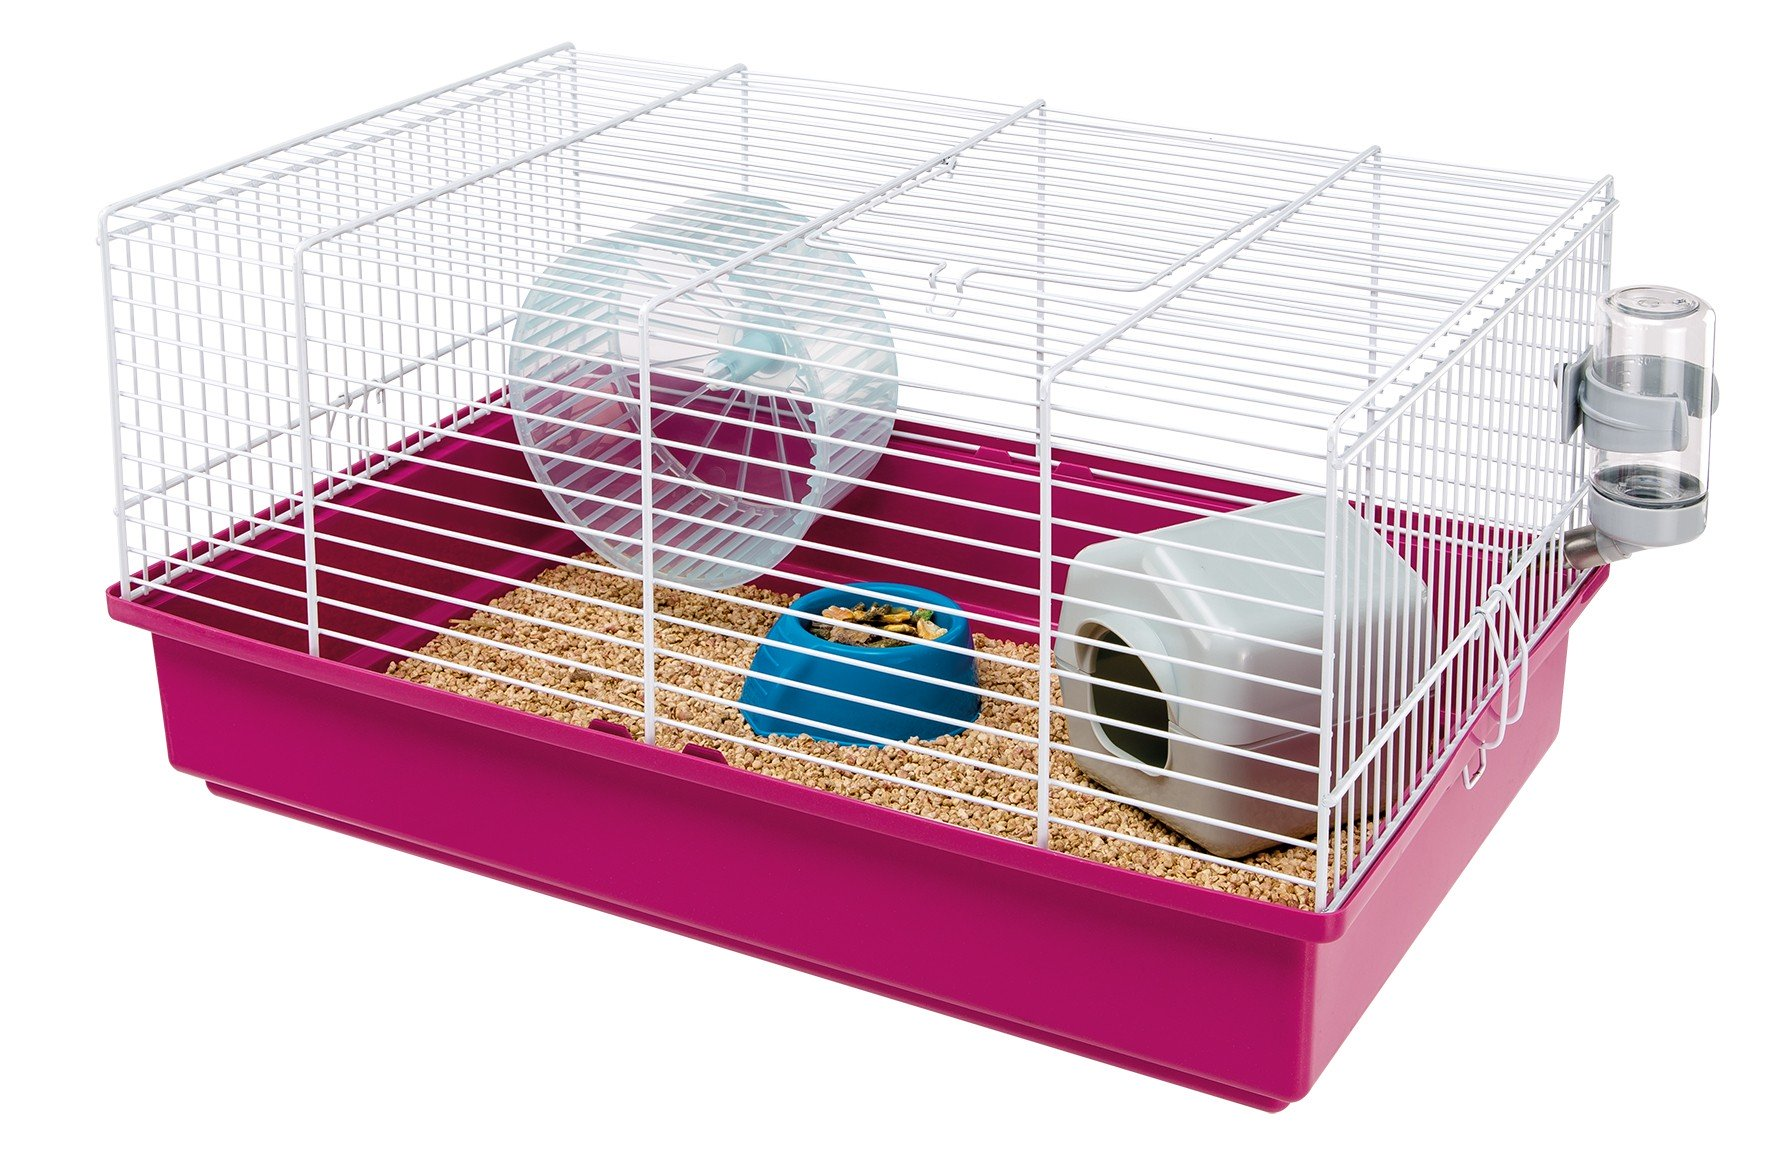 Ferplast Criceti 9 Hamster Cage With Accessories